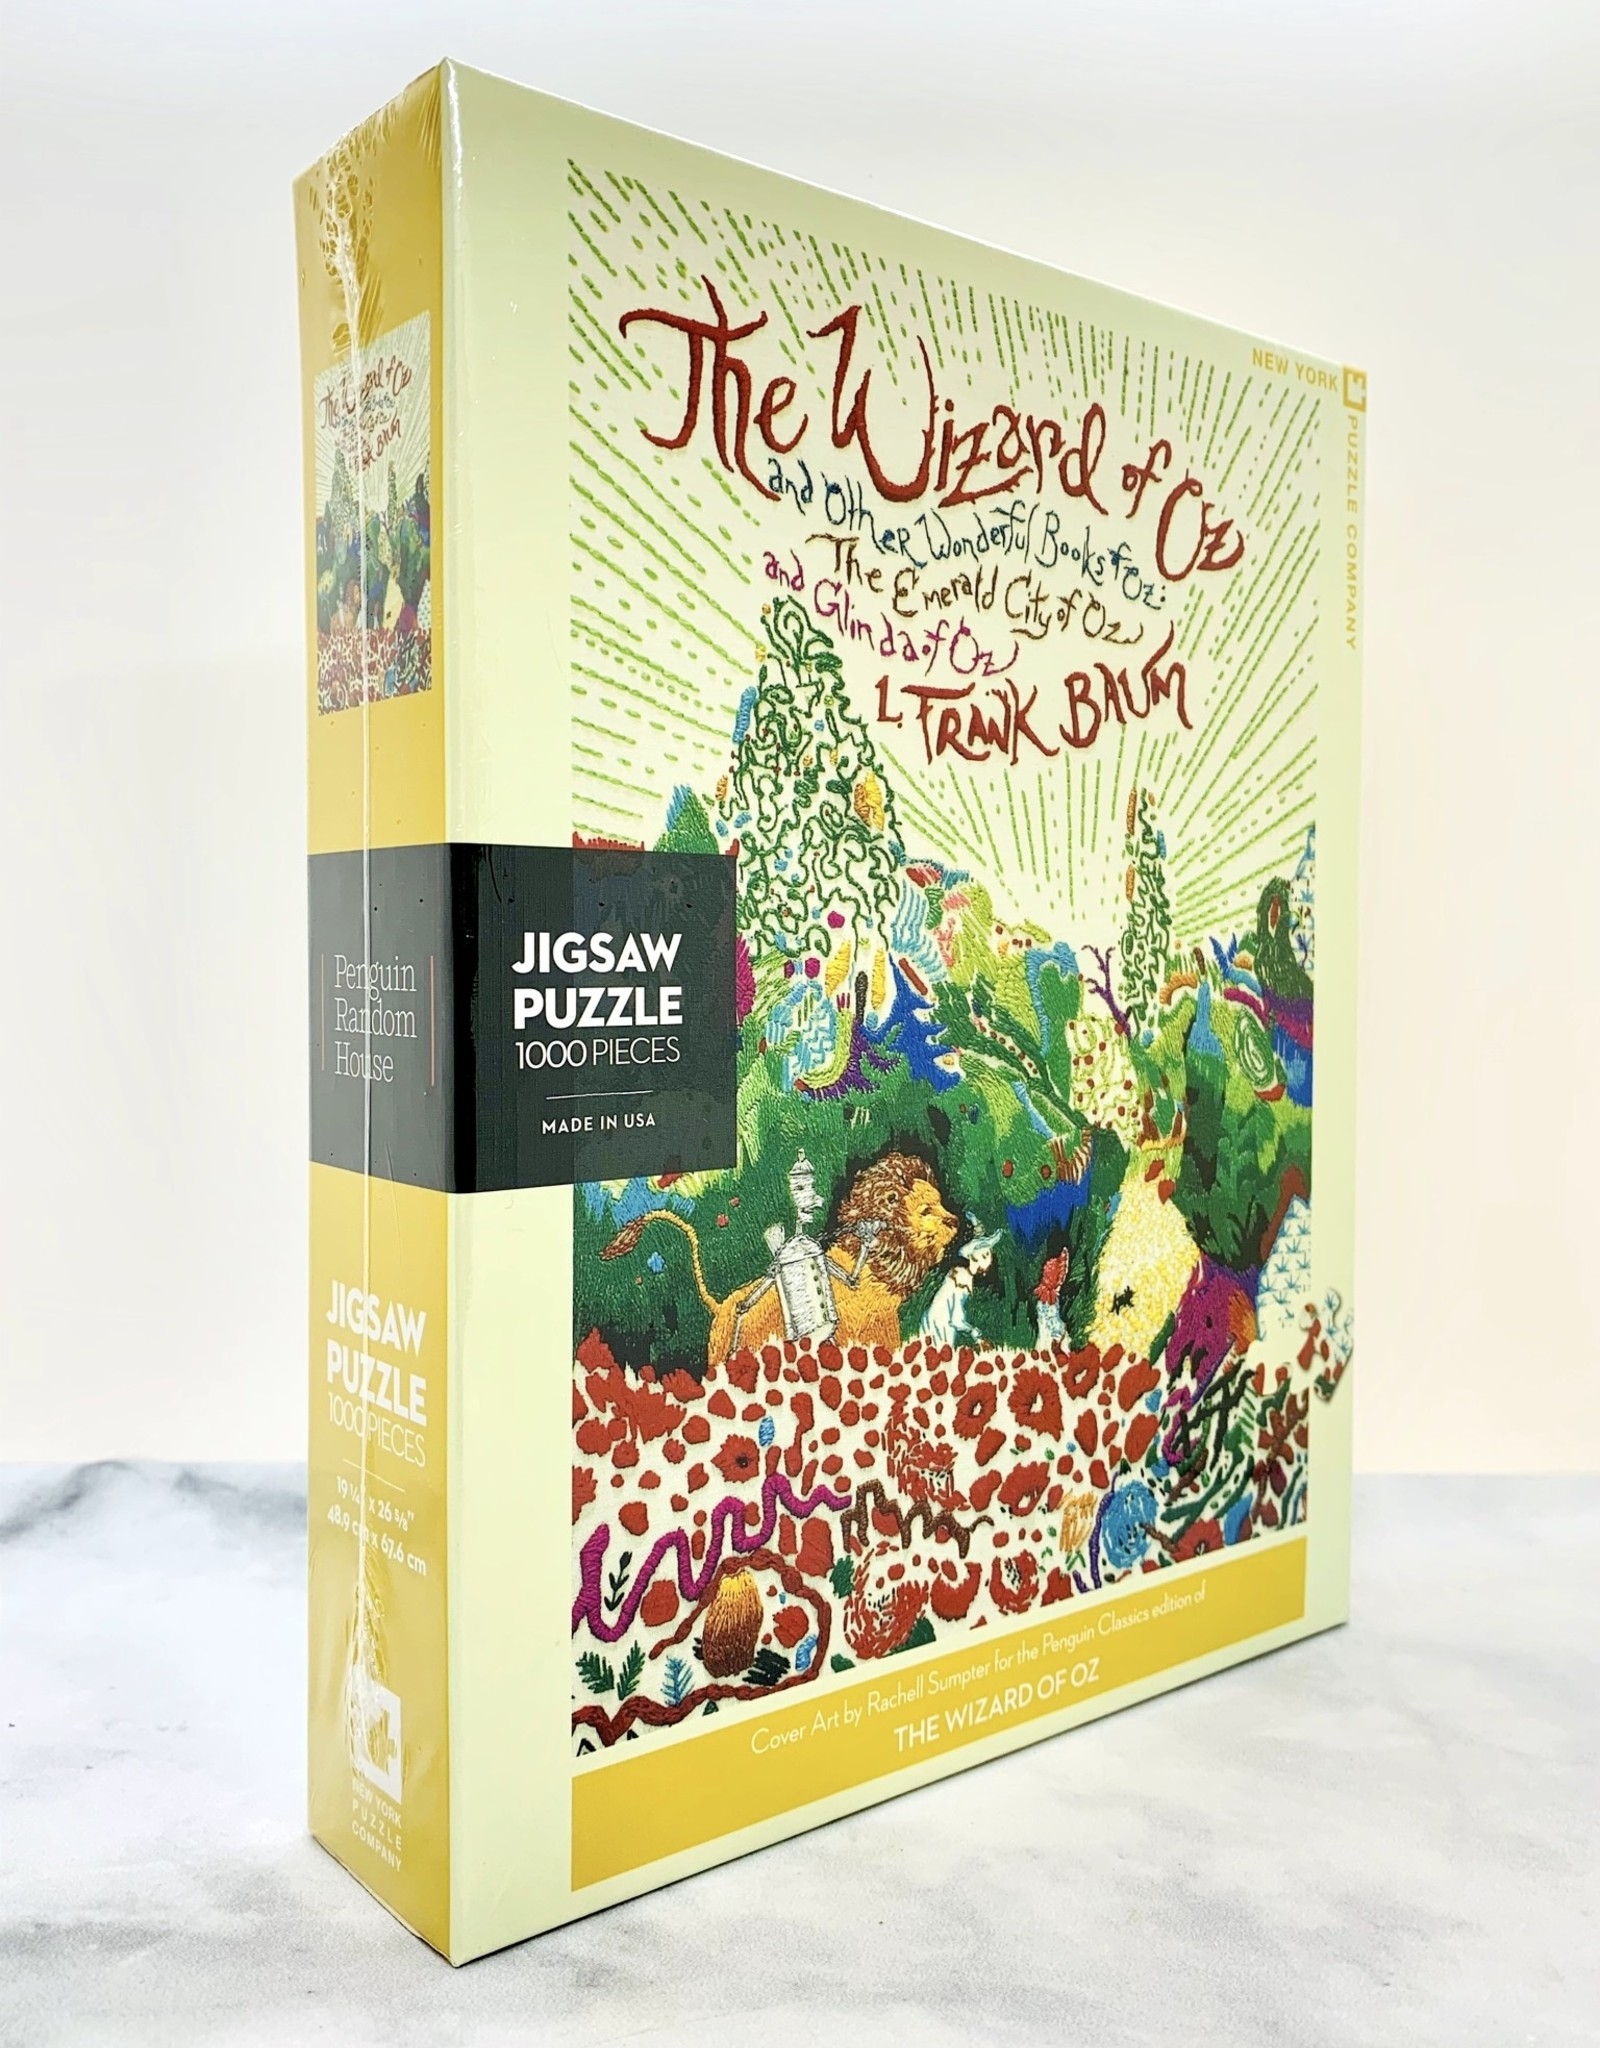 New York Puzzle Company Wizard of Oz 1000 Piece Puzzle